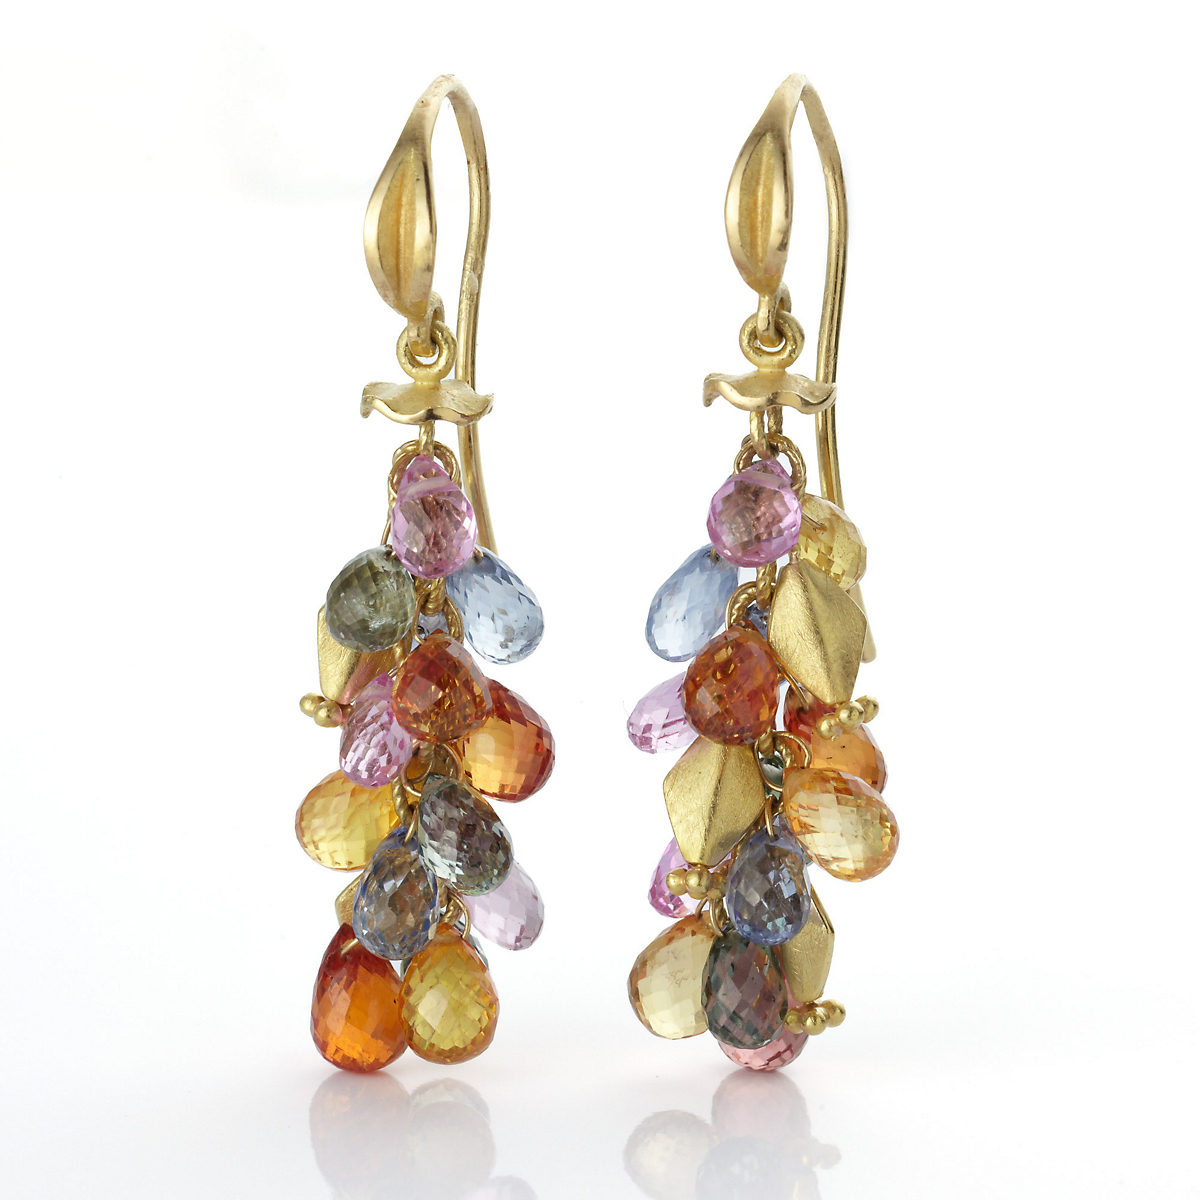 Barbara Heinrich Sapphire Briolette Earrings